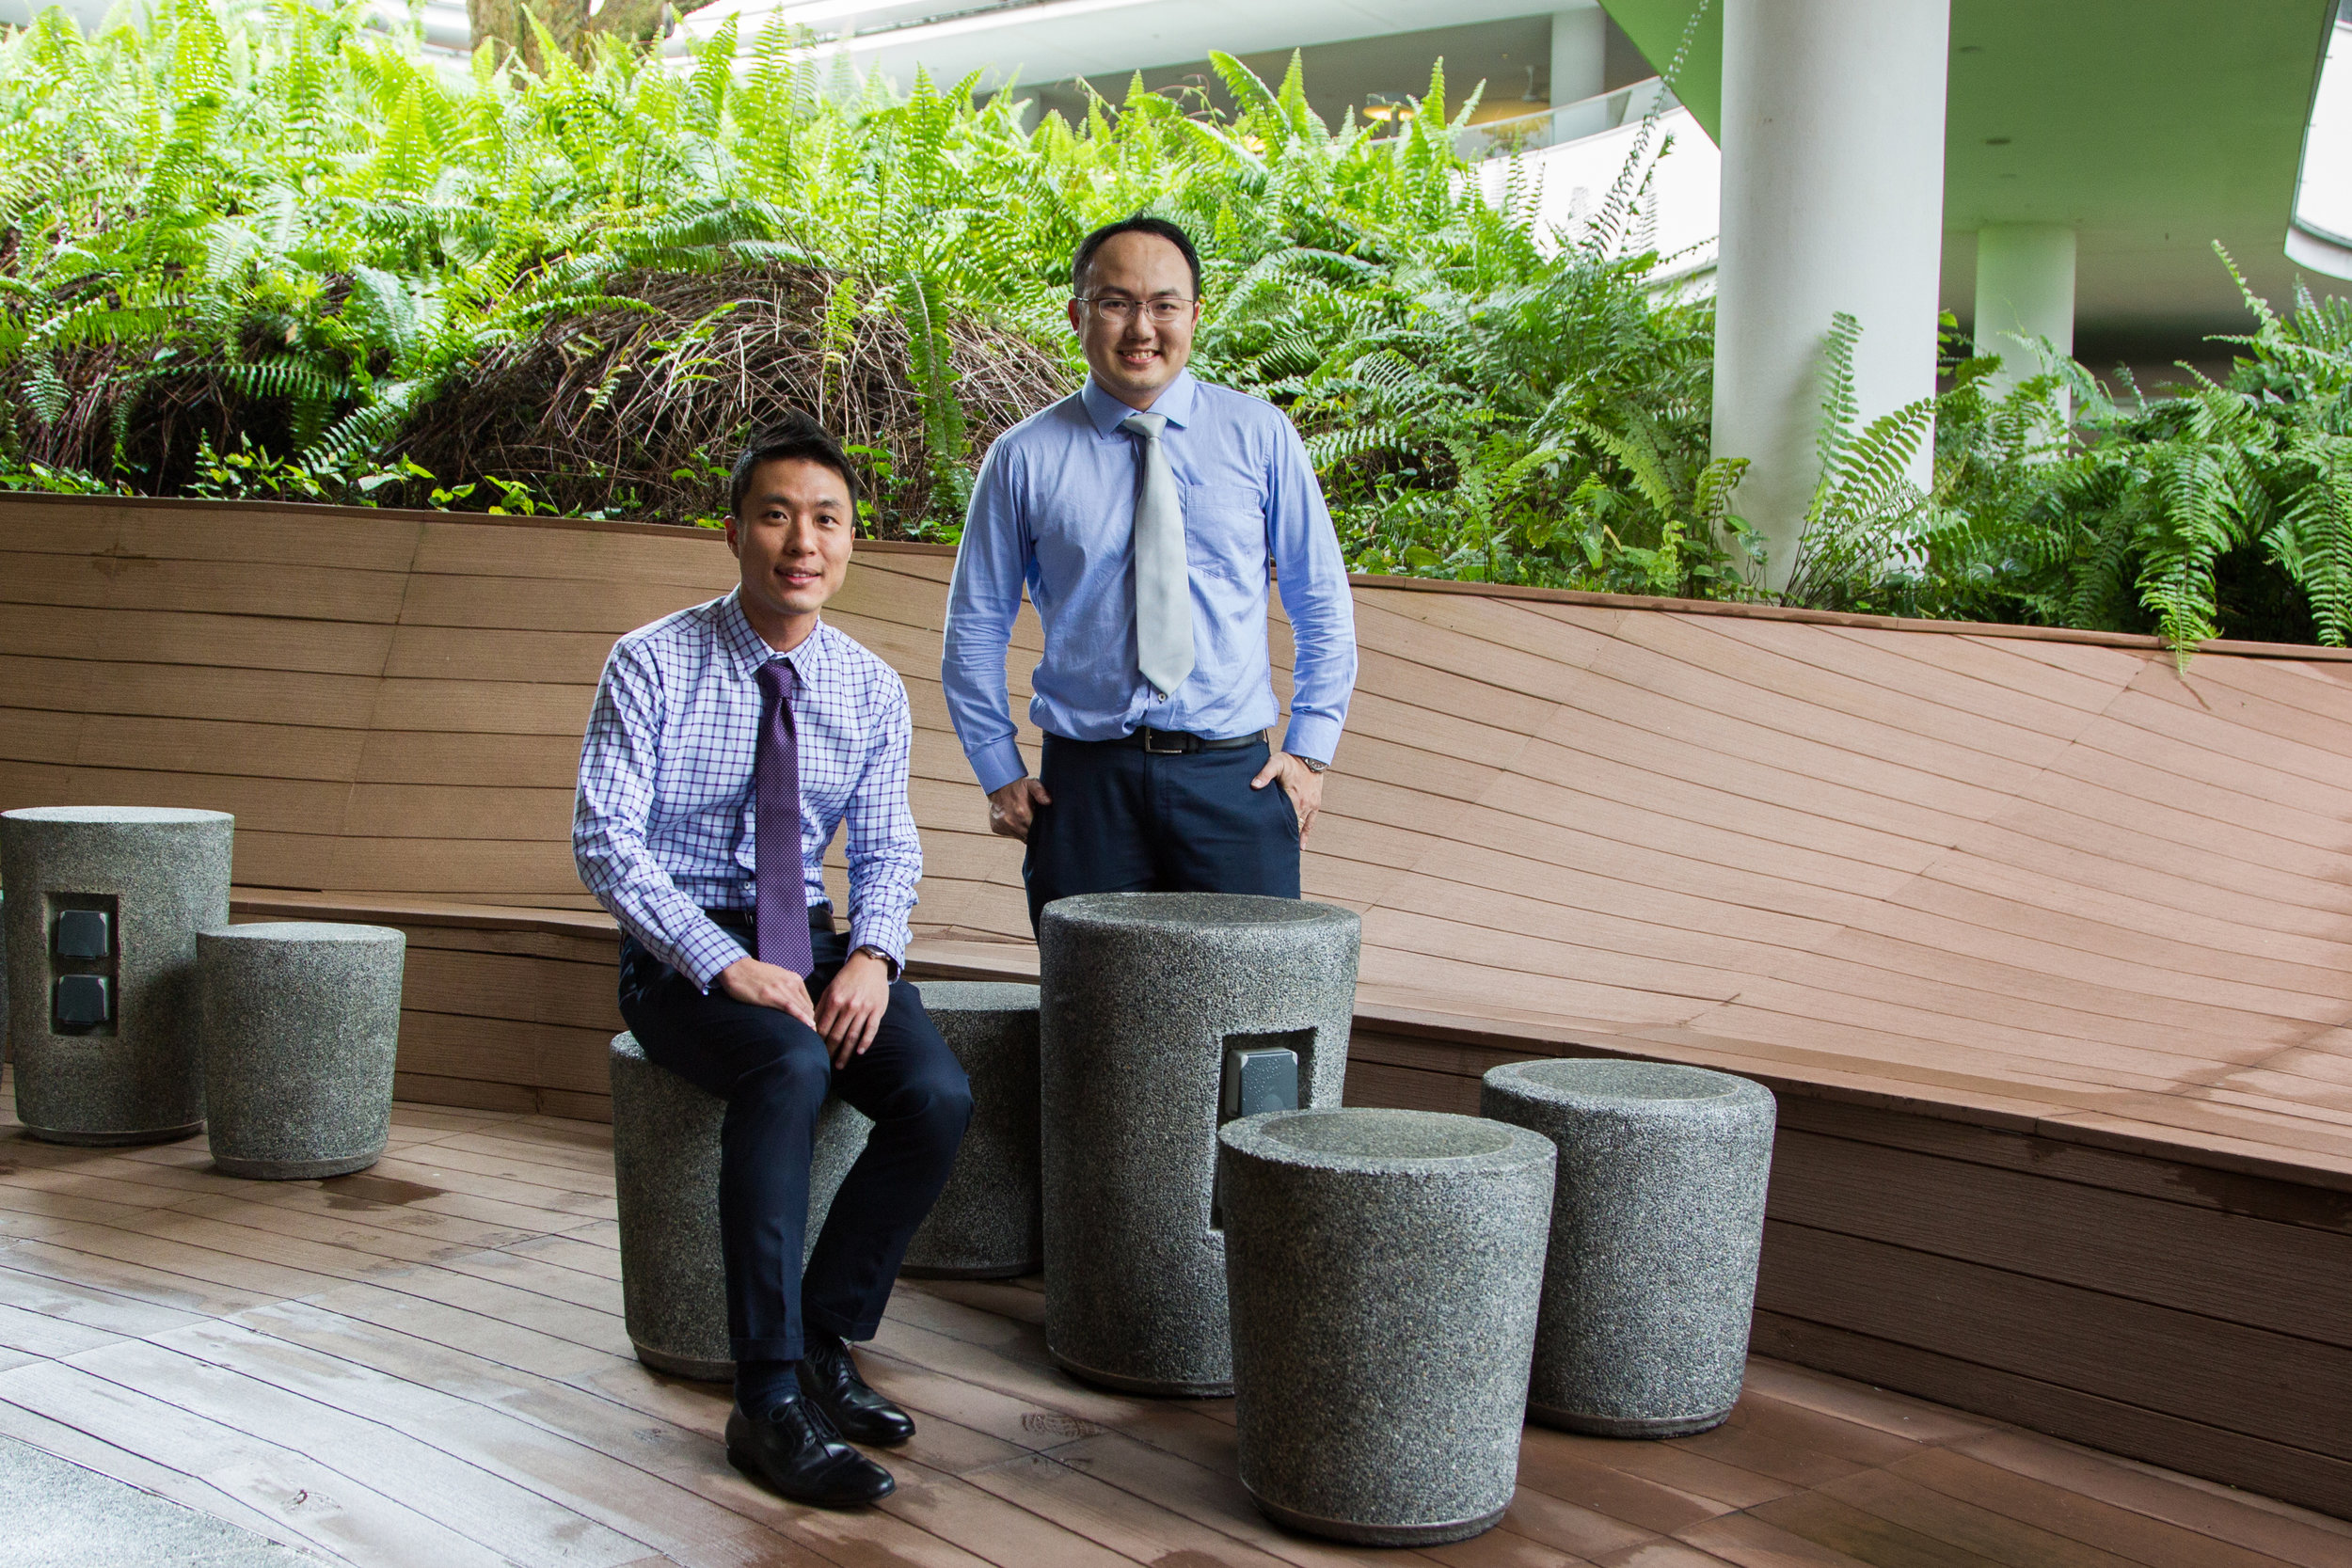 Staff Advisors - Faculty members from the Economics Department, Dr Kelvin Seah and Mr Chua Yeow Hwee  provide valuable feedback to the Economics Society.